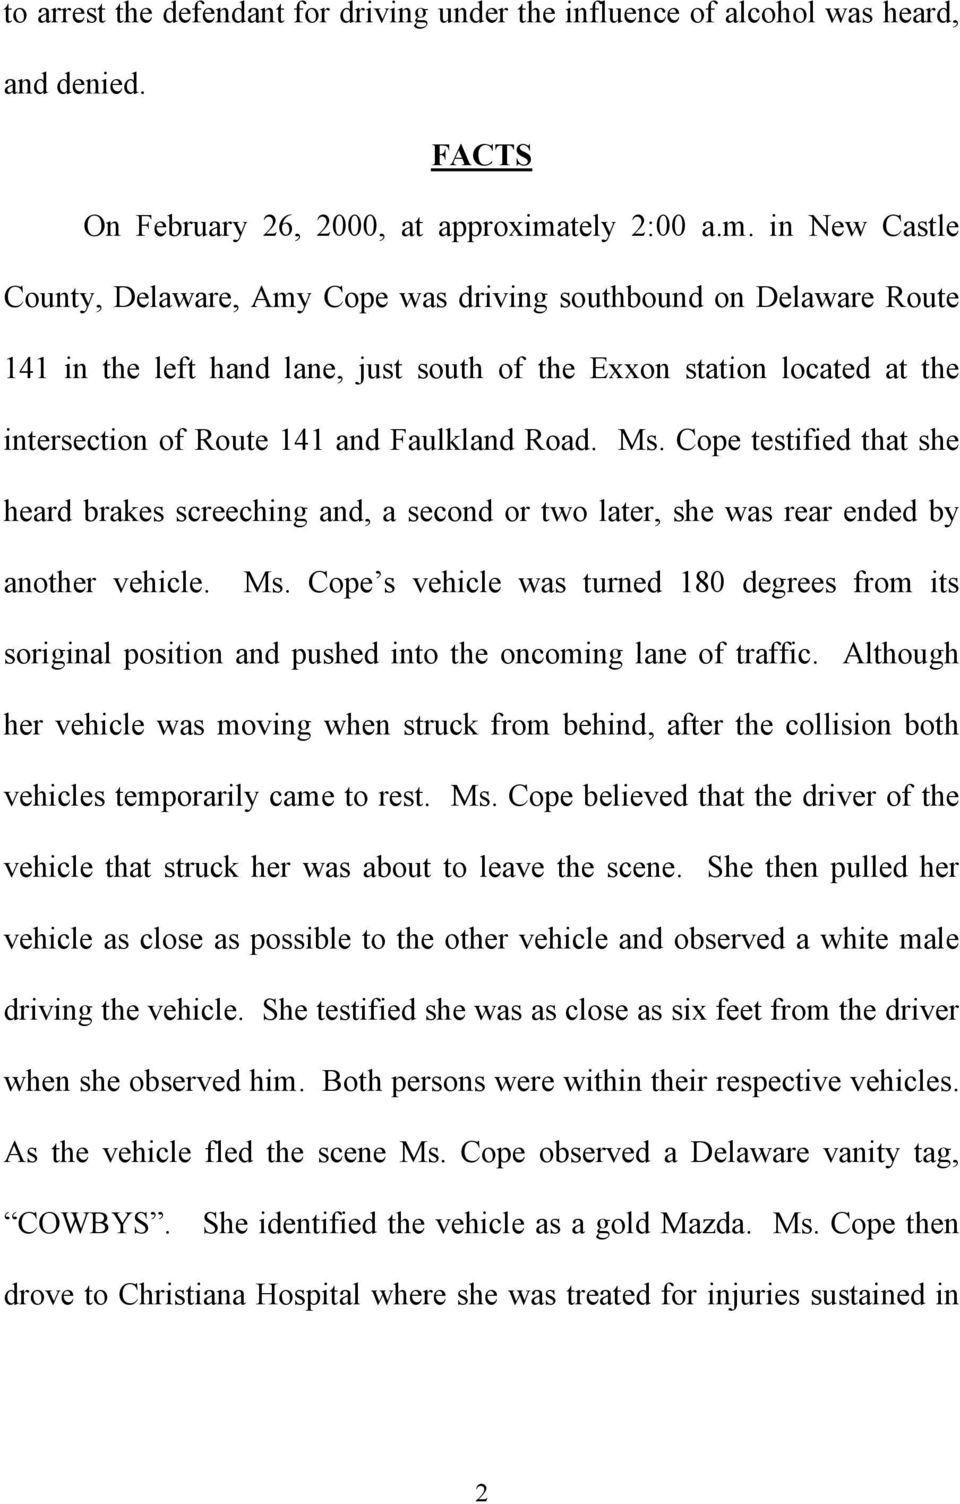 in New Castle County, Delaware, Amy Cope was driving southbound on Delaware Route 141 in the left hand lane, just south of the Exxon station located at the intersection of Route 141 and Faulkland